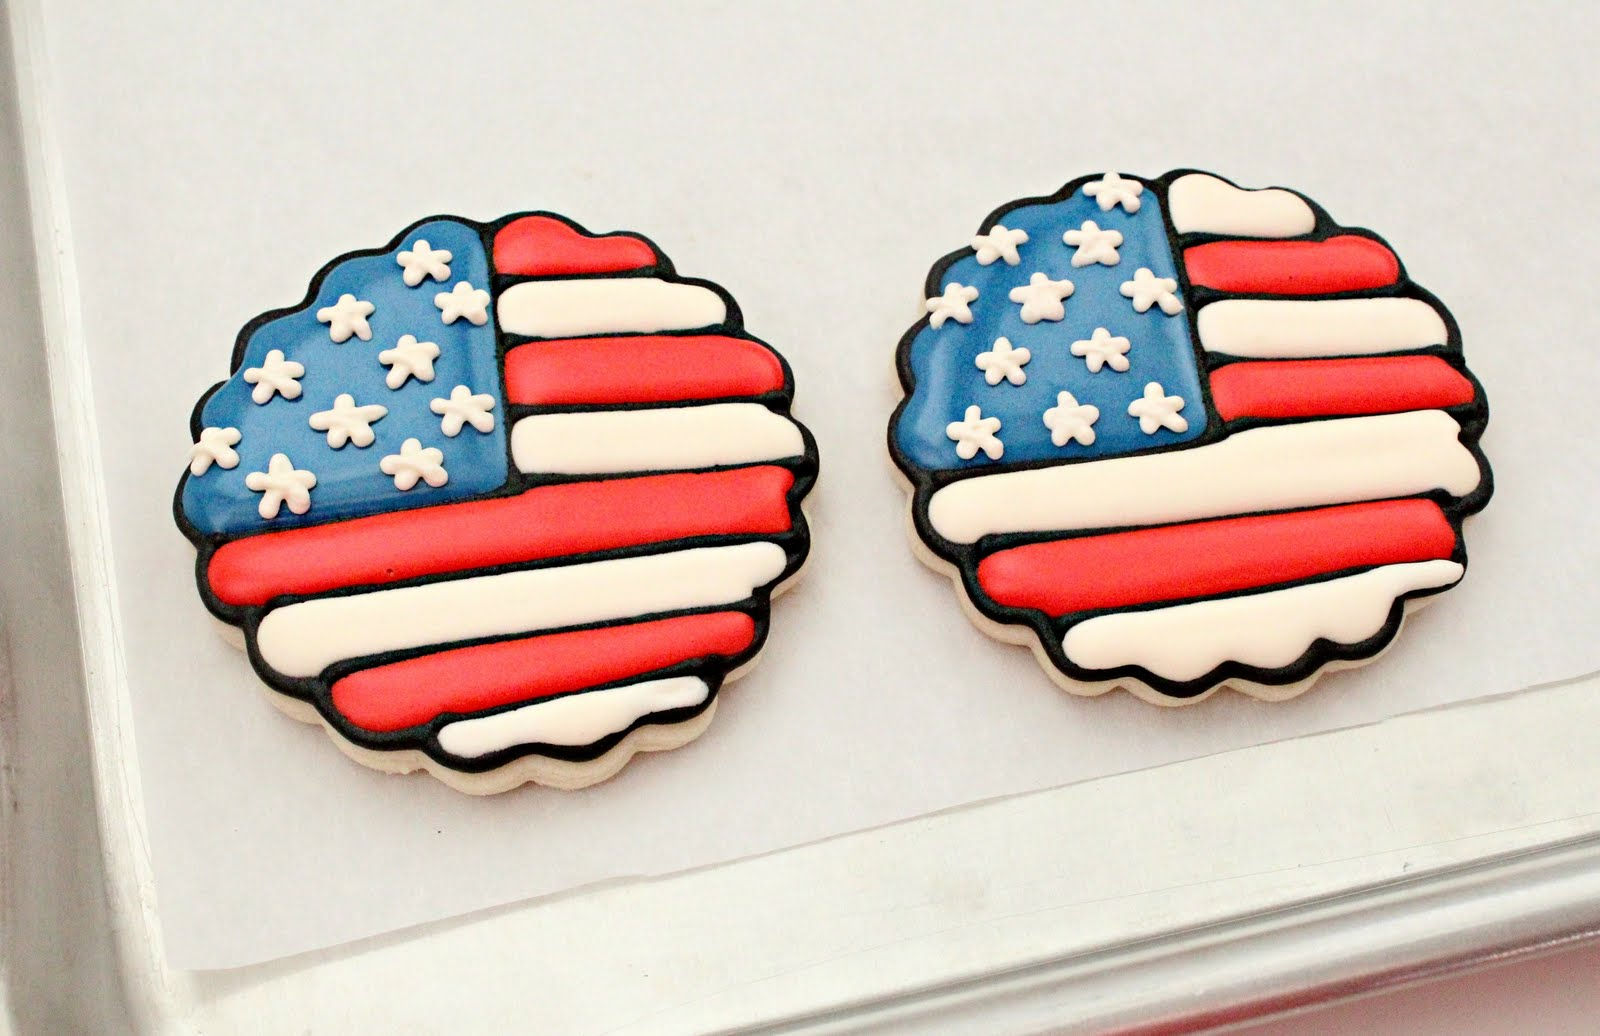 39dd4180b463 American Flag Decorated Cookies - Best Picture Of Flag Imagesco.Org